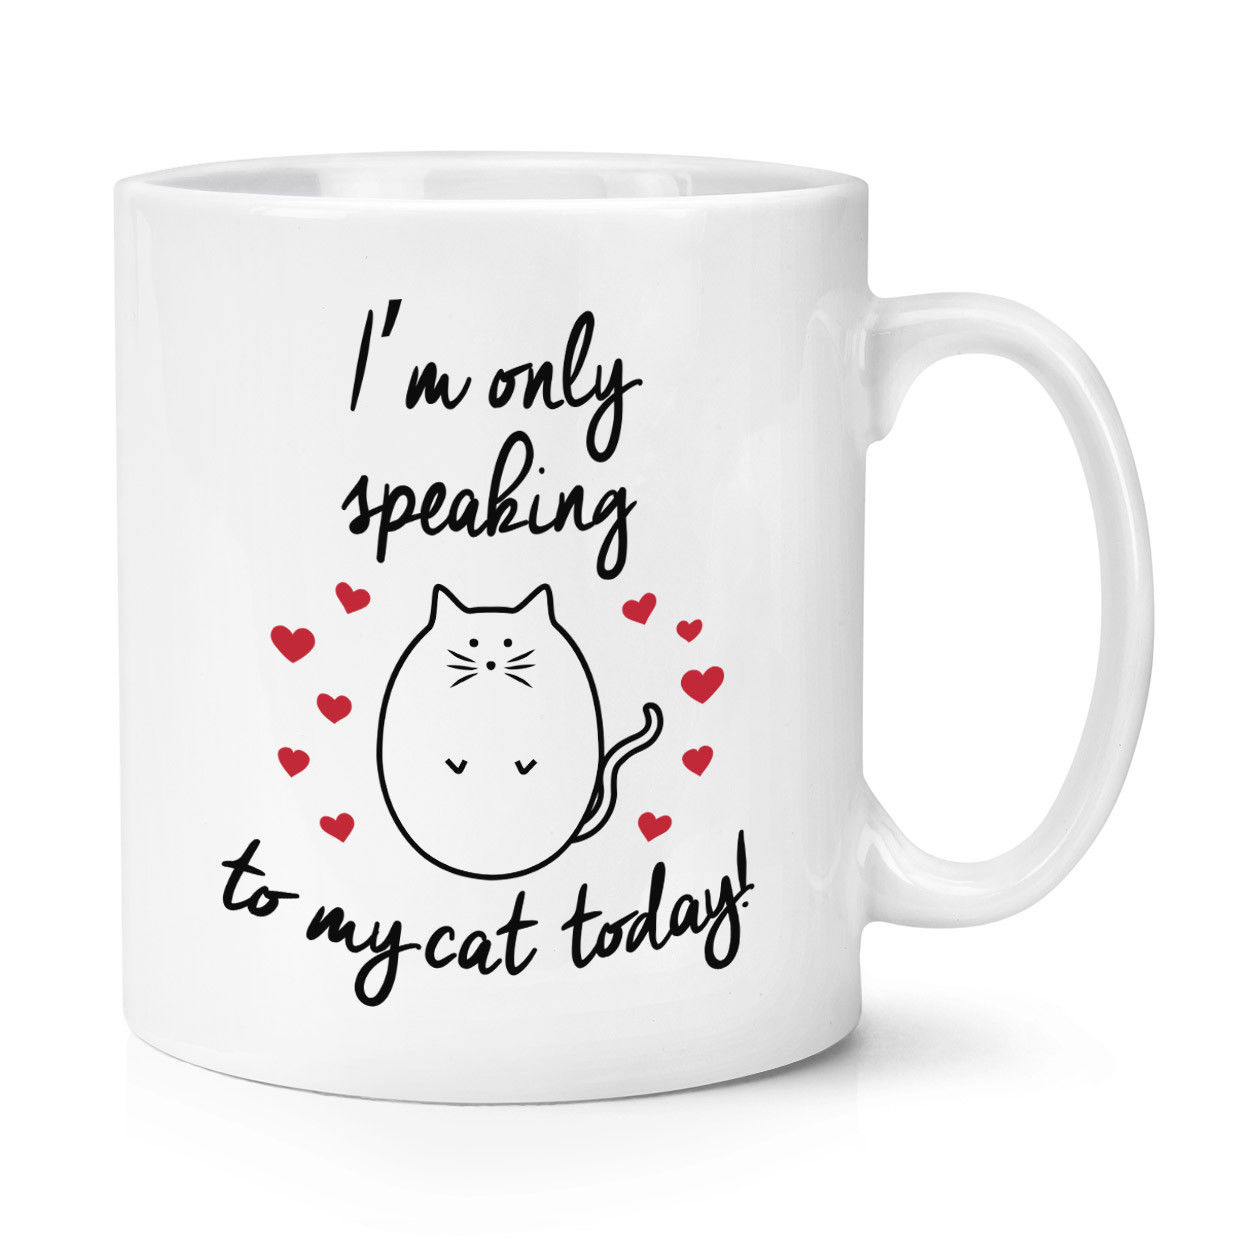 I'm Only Speaking To My Cat Today Cup Kitten Funny Crazy Cat Lady Mug image